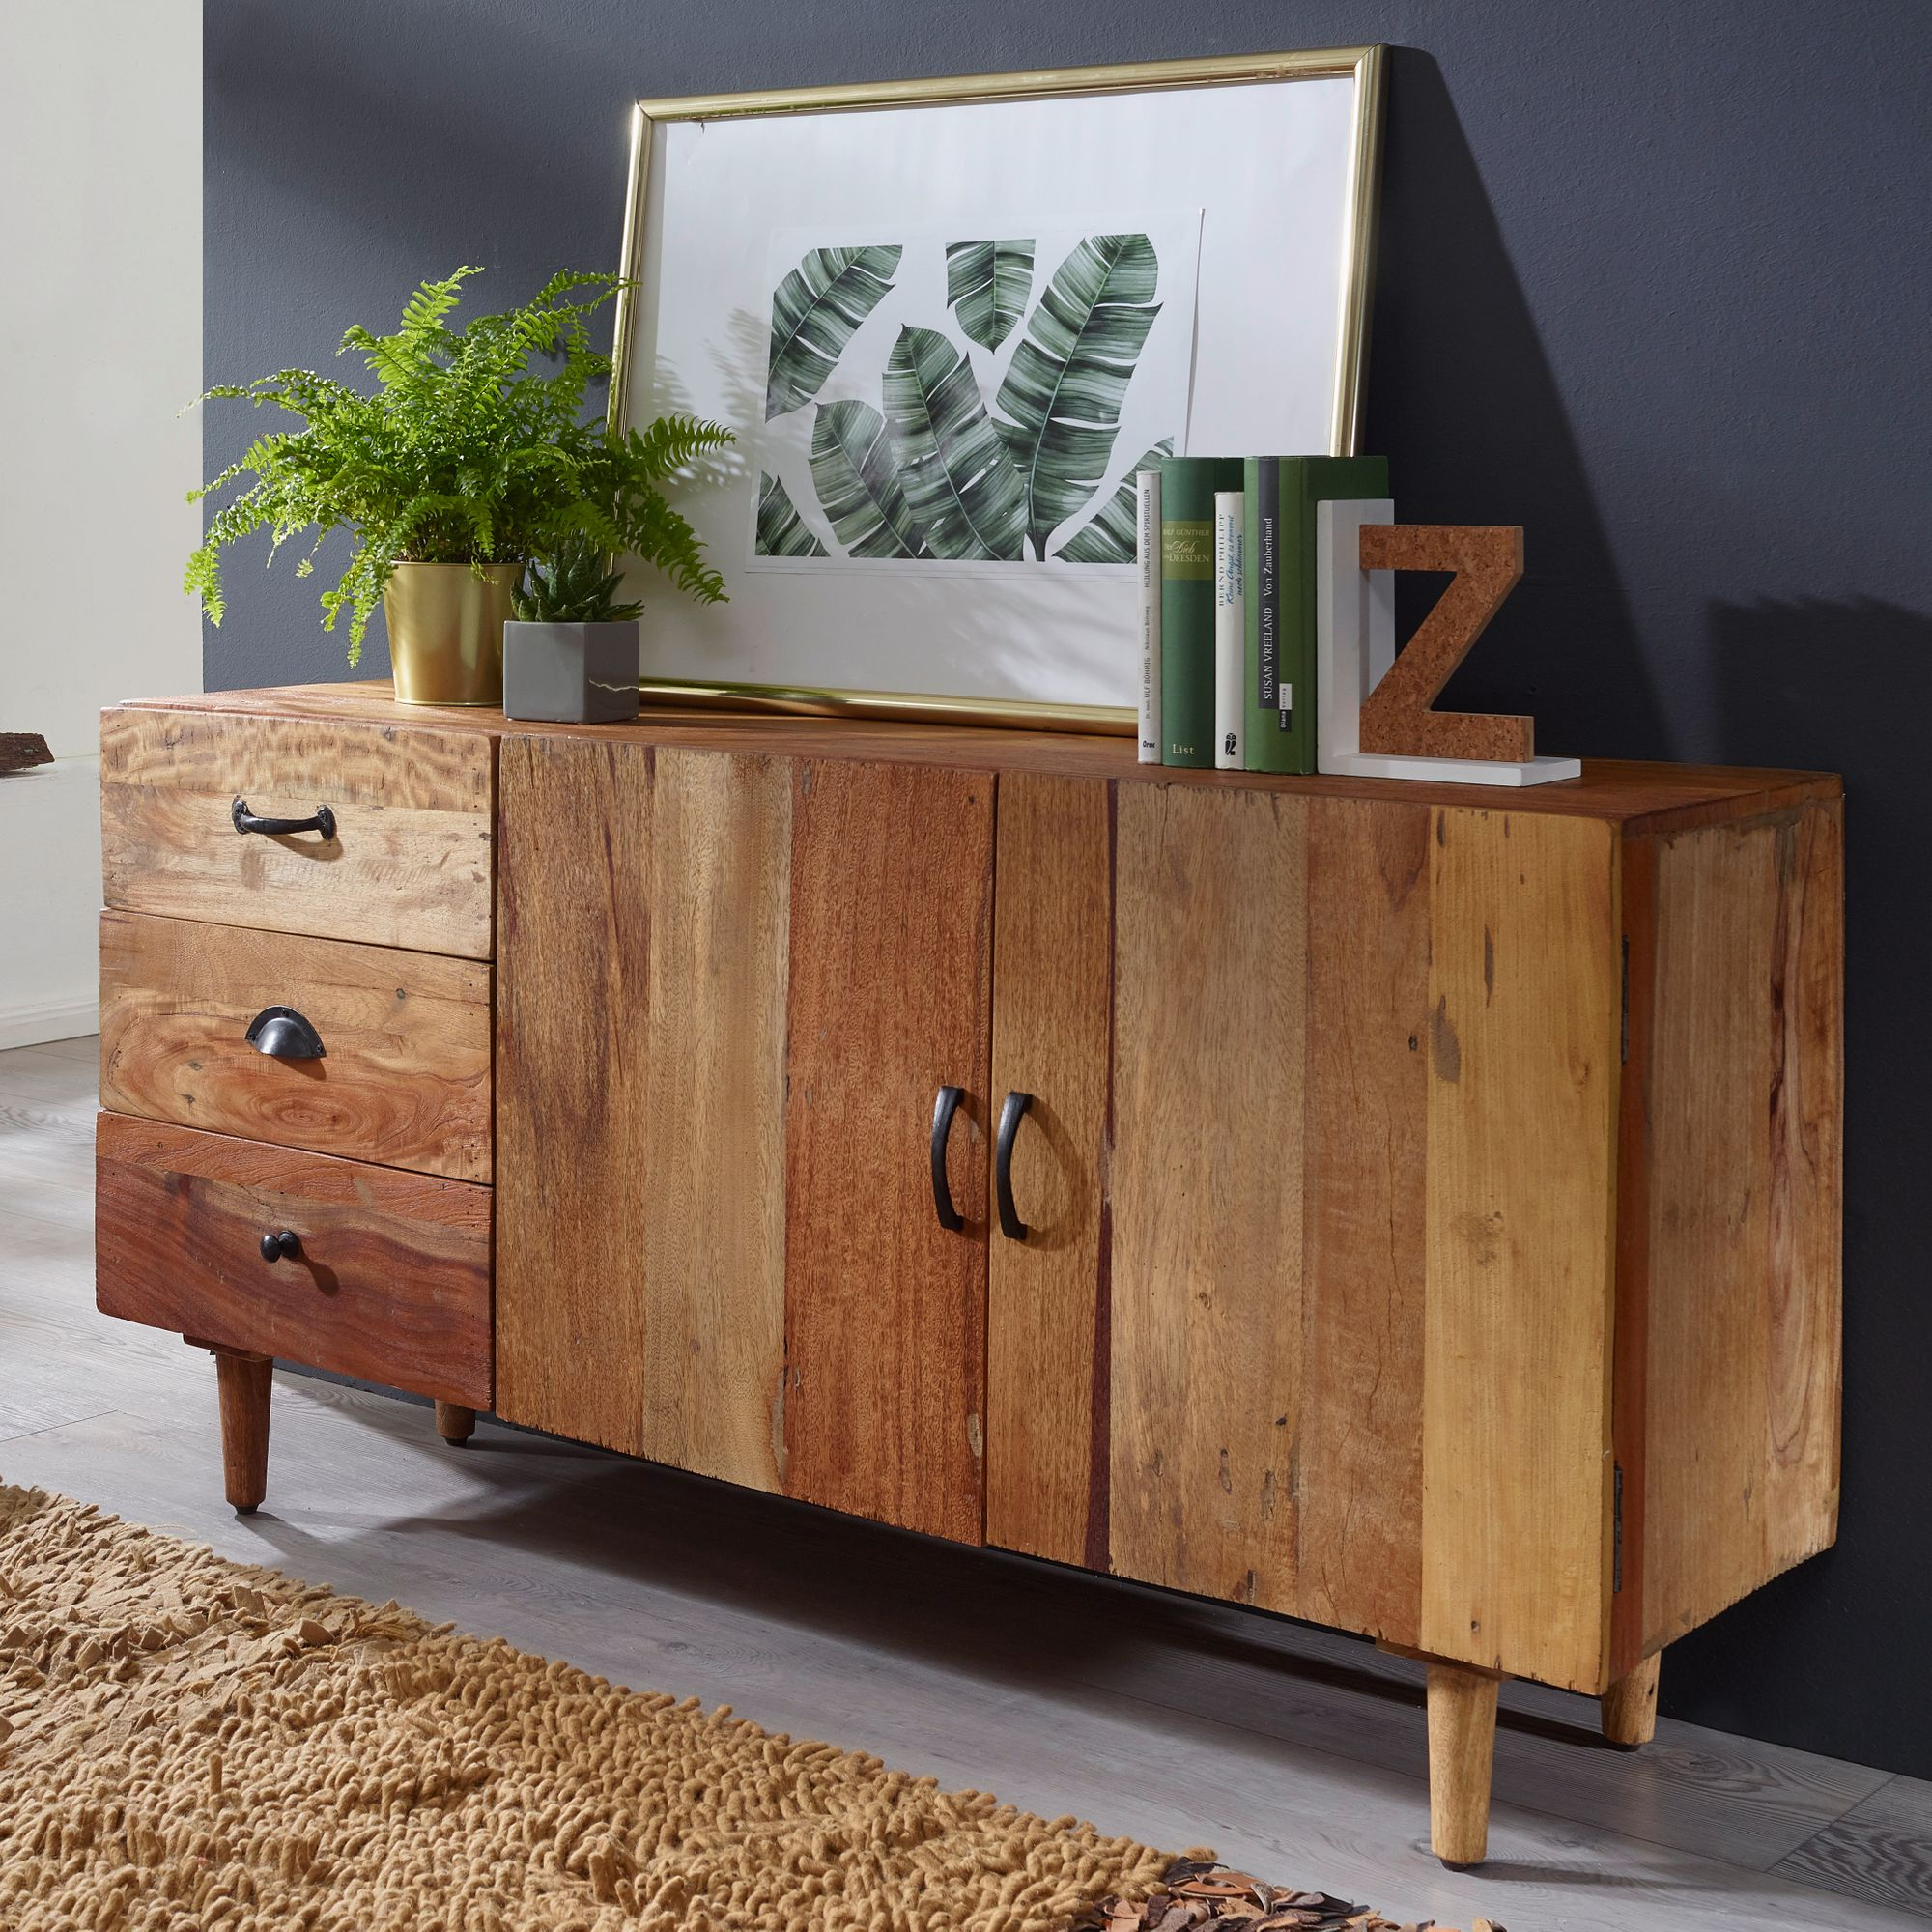 finebuy sideboard nami kommode anrichte landhaus schubladenkommode holz massiv. Black Bedroom Furniture Sets. Home Design Ideas